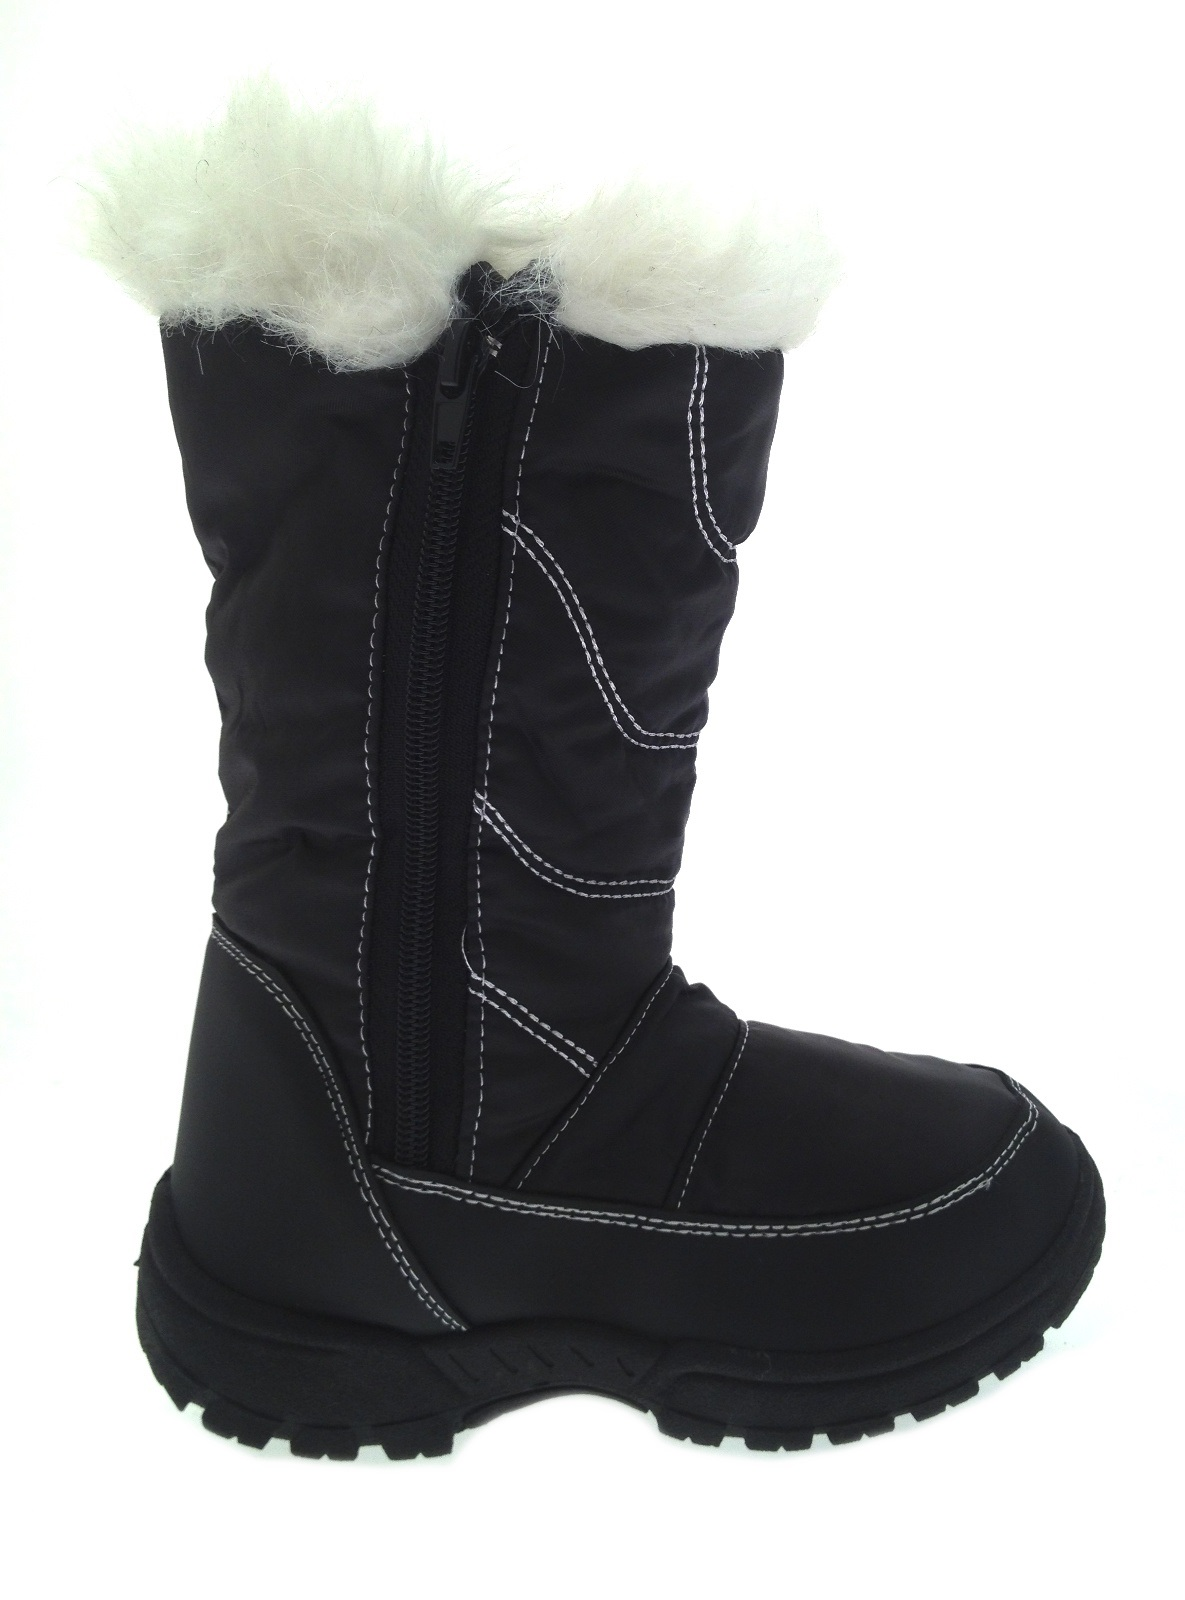 Kids Girls Boys Waterproof Sole Snow Boots Fur Trim Mucker